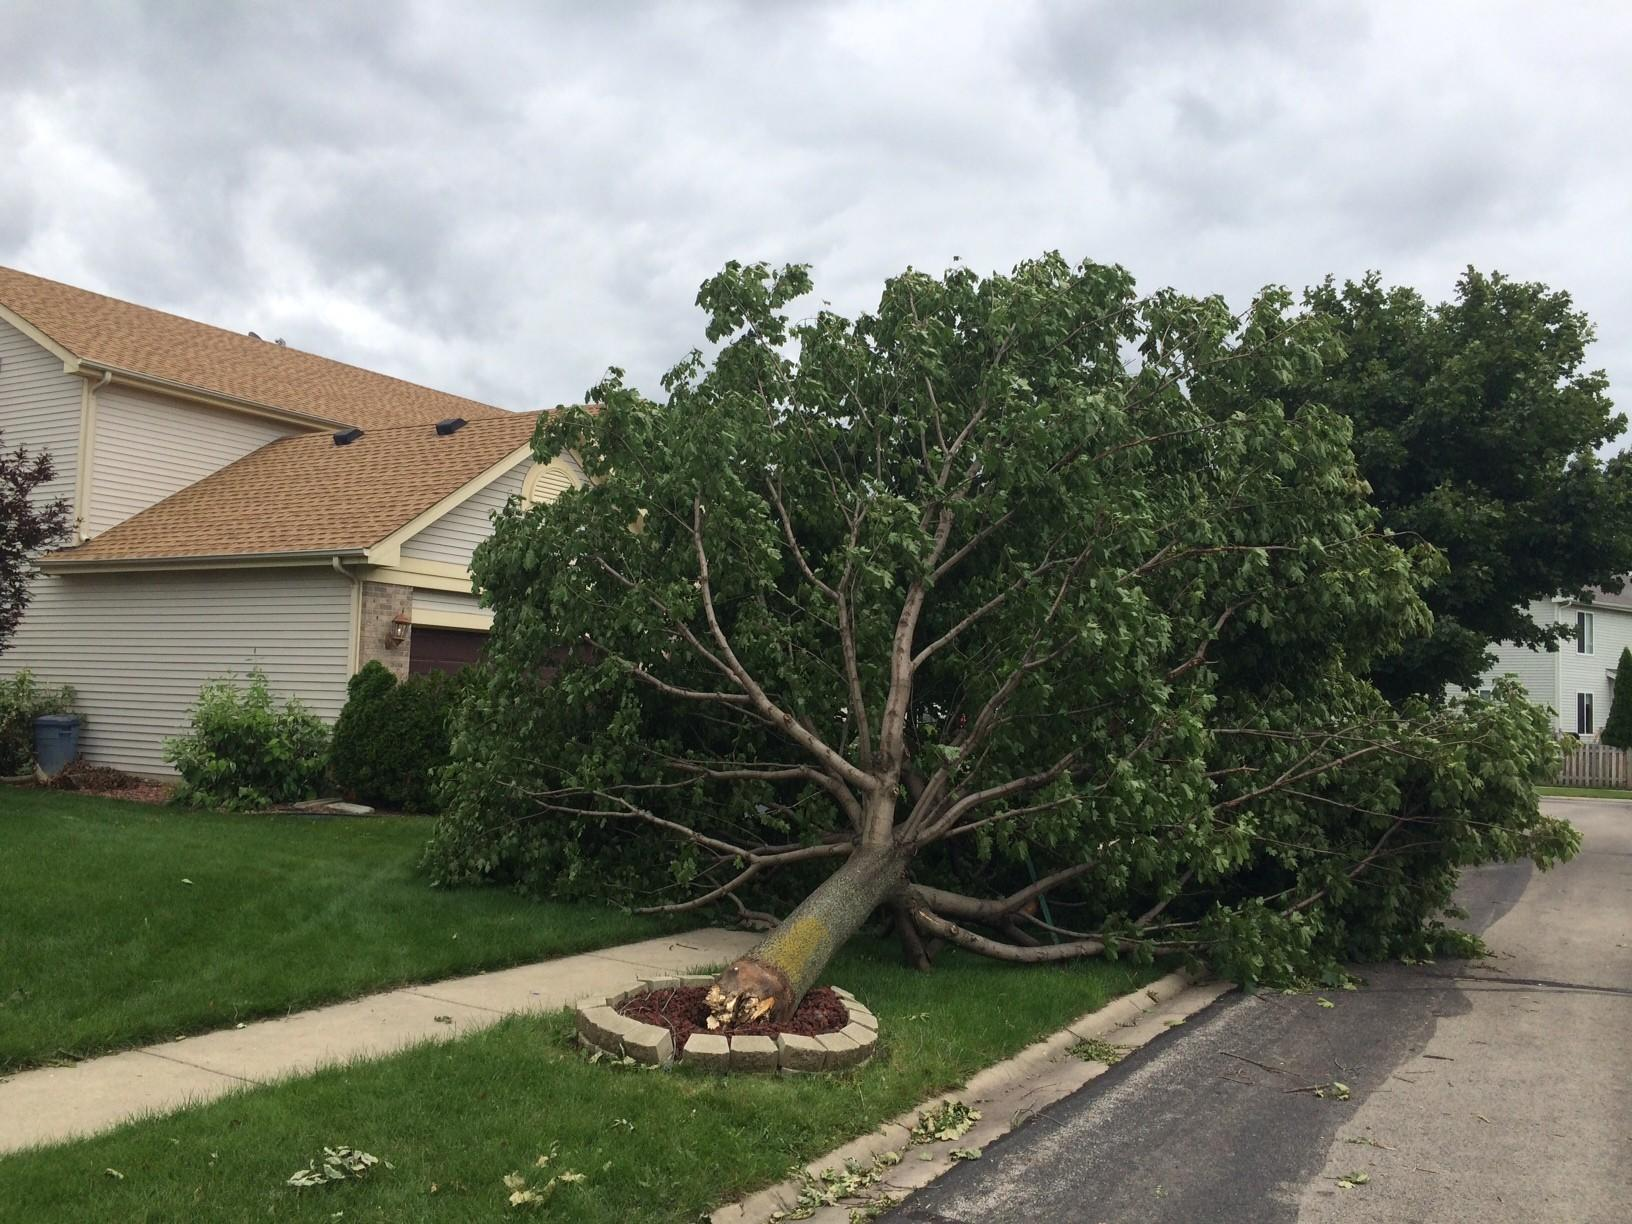 A fallen maple tree remained on the front lawn of the home in the Lakewood Hills subdivision in Plainfield on Wednesday, where the National Weather Service said a tornado touched down Monday night.